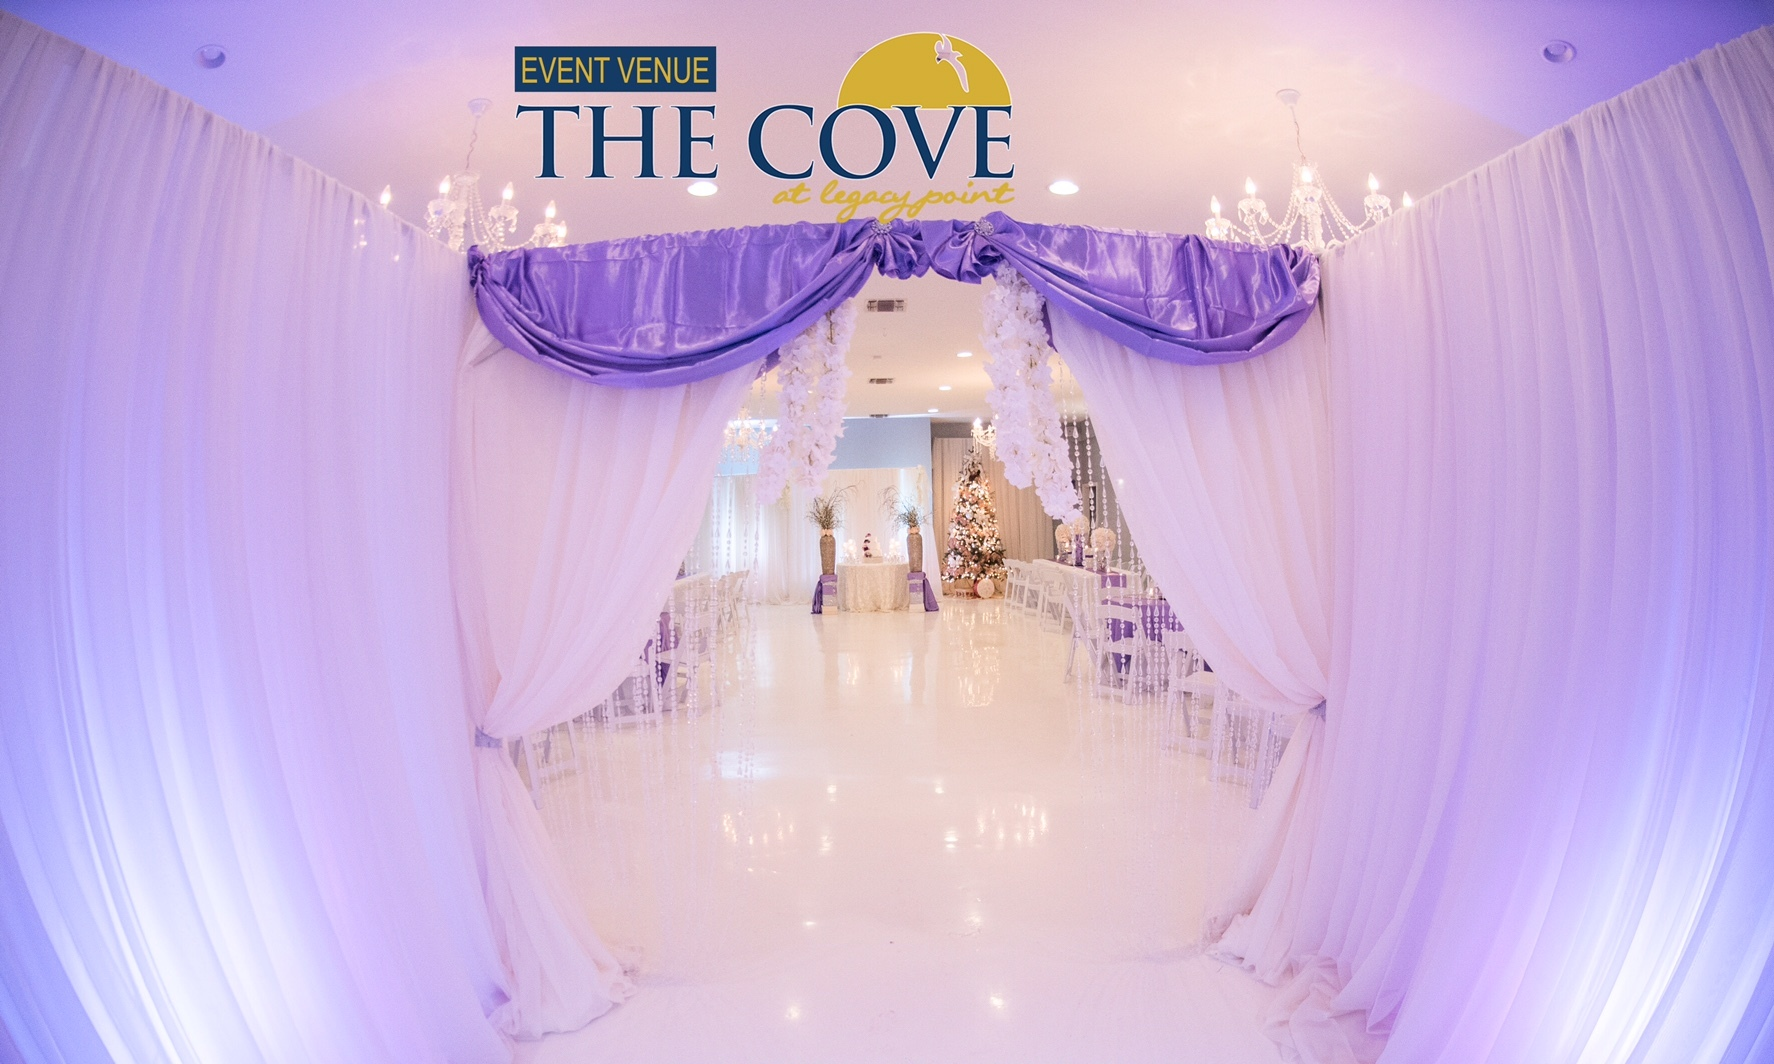 A wedding reception setup at the wedding venue The Cove located in Thibodaux, Louisiana near Morgan City, Louisiana.